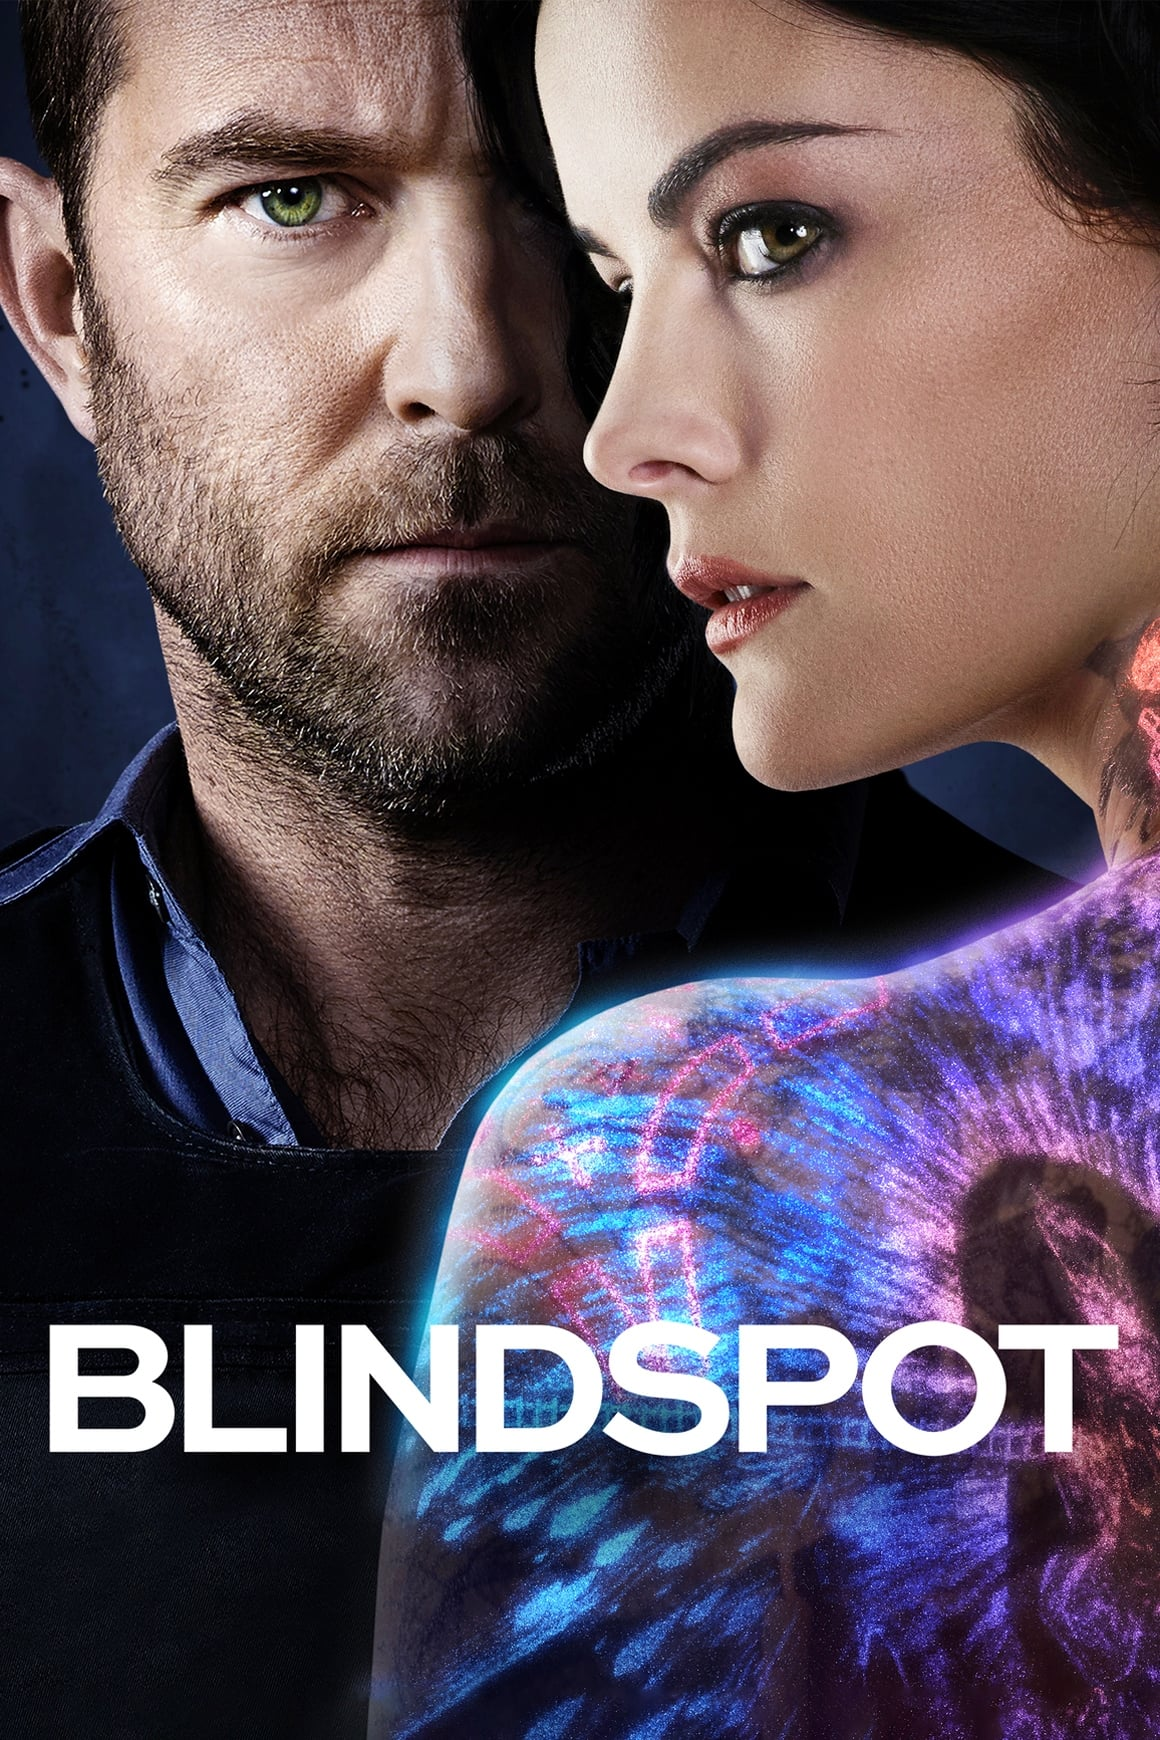 image for Blindspot